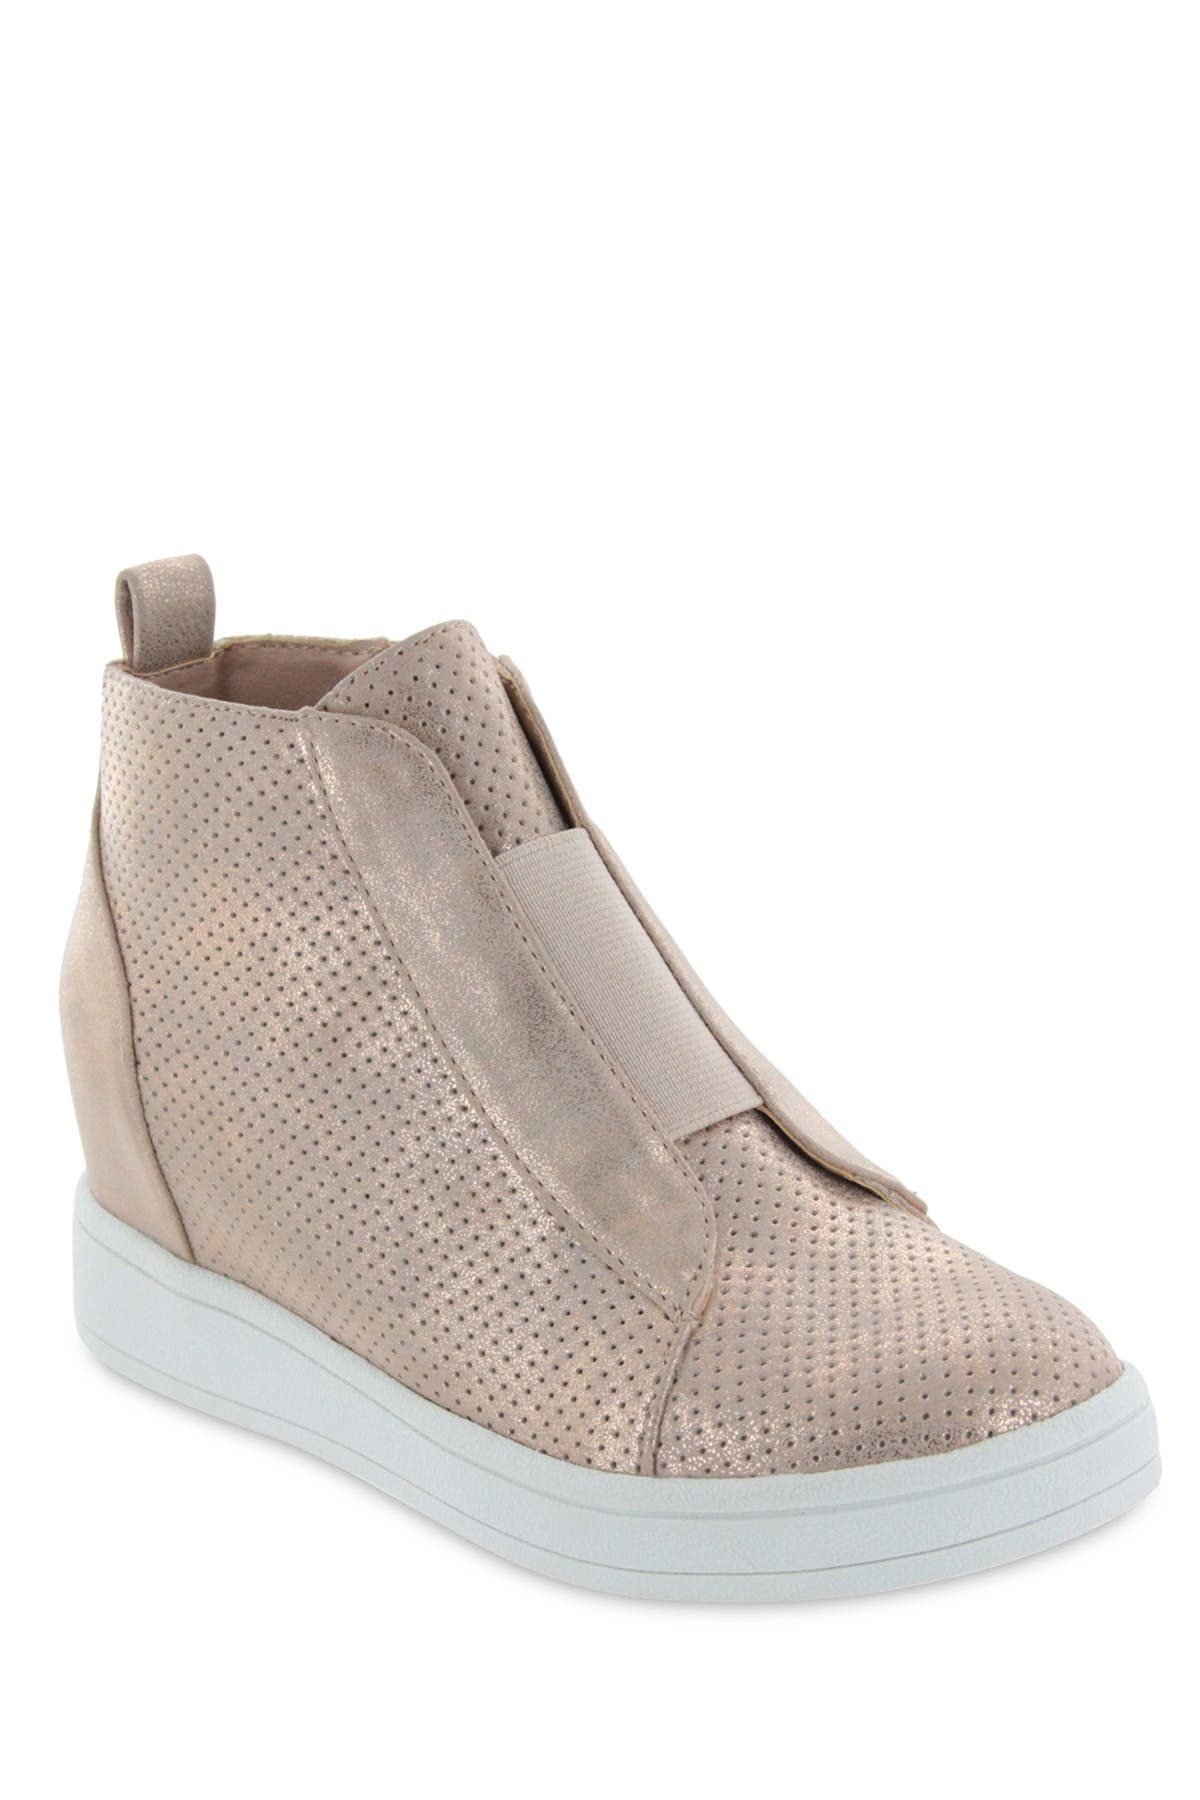 Image of MIA Gracey Laceless Perforated Wedge Hi-Top Sneaker